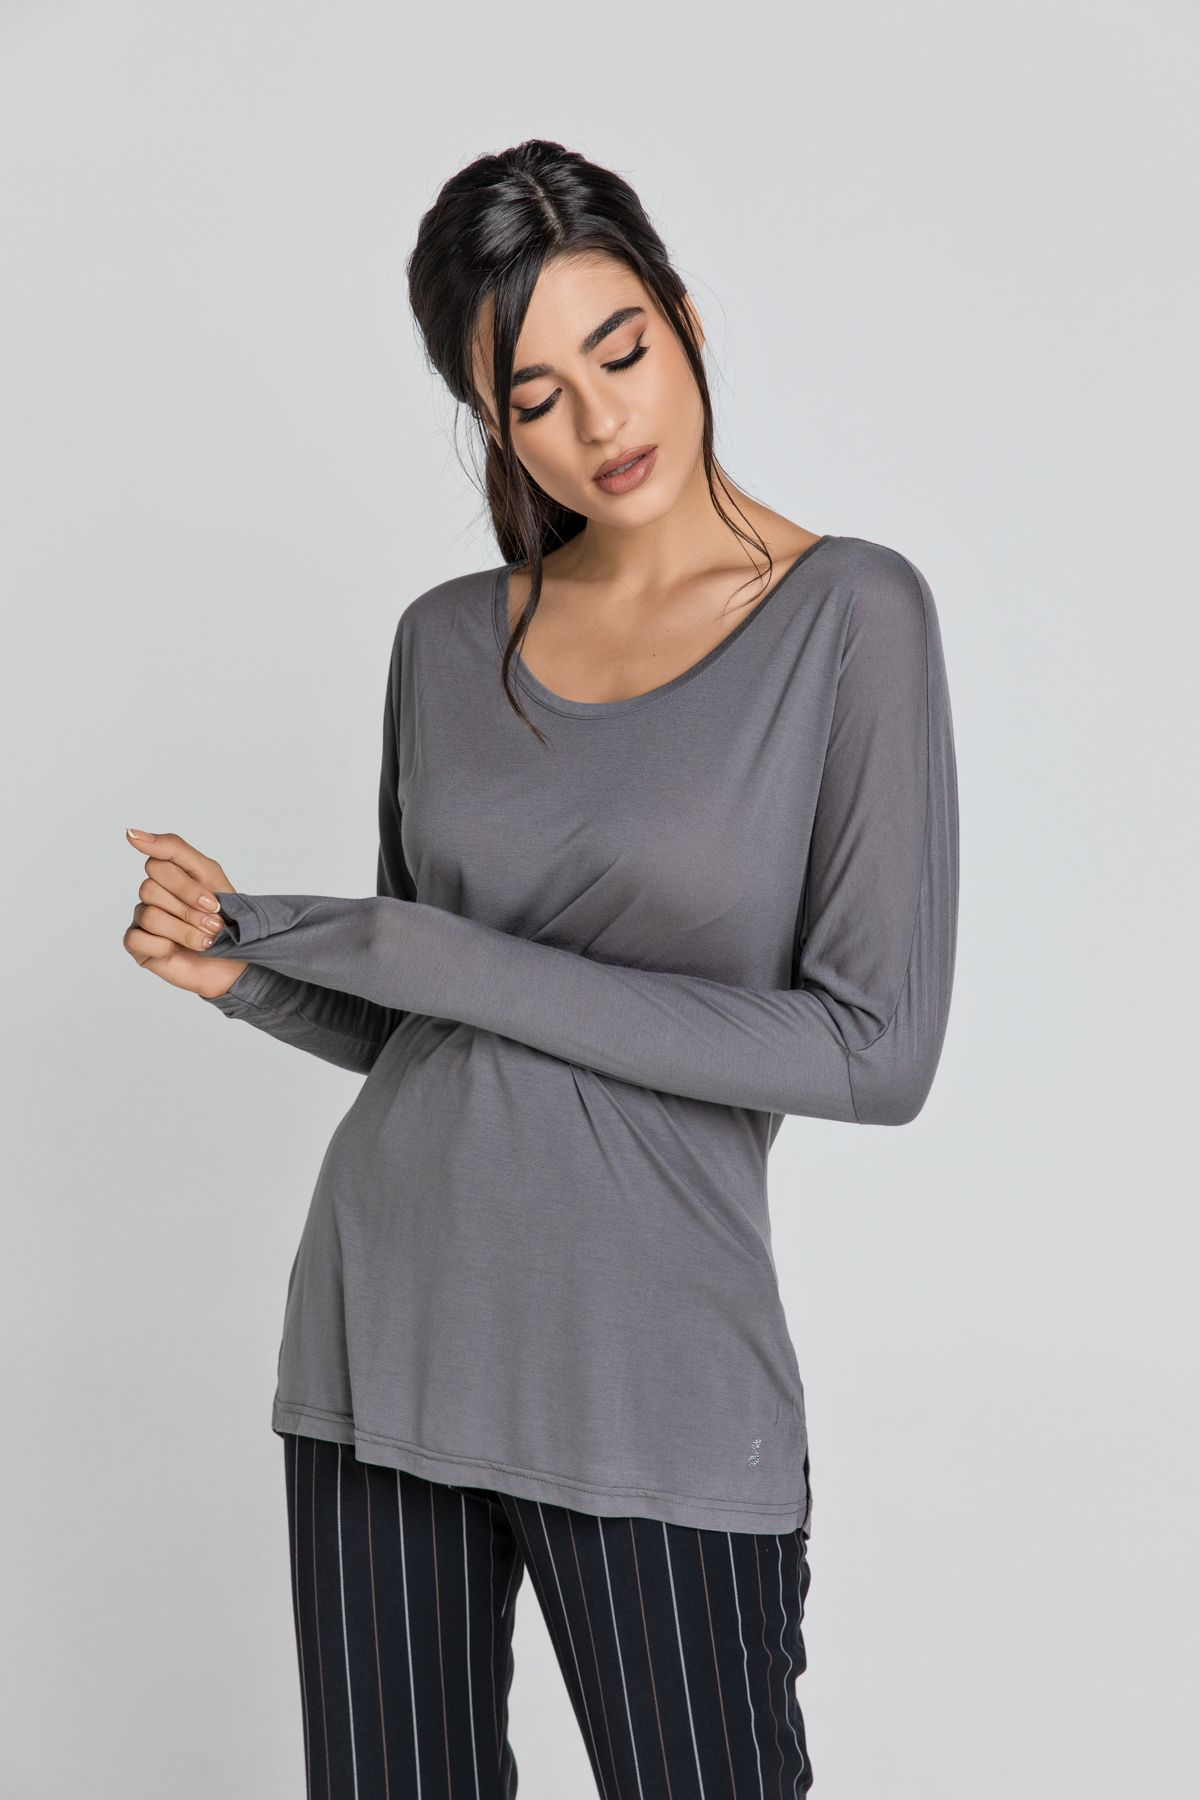 Dark Grey Top with Long Batwing Sleeves